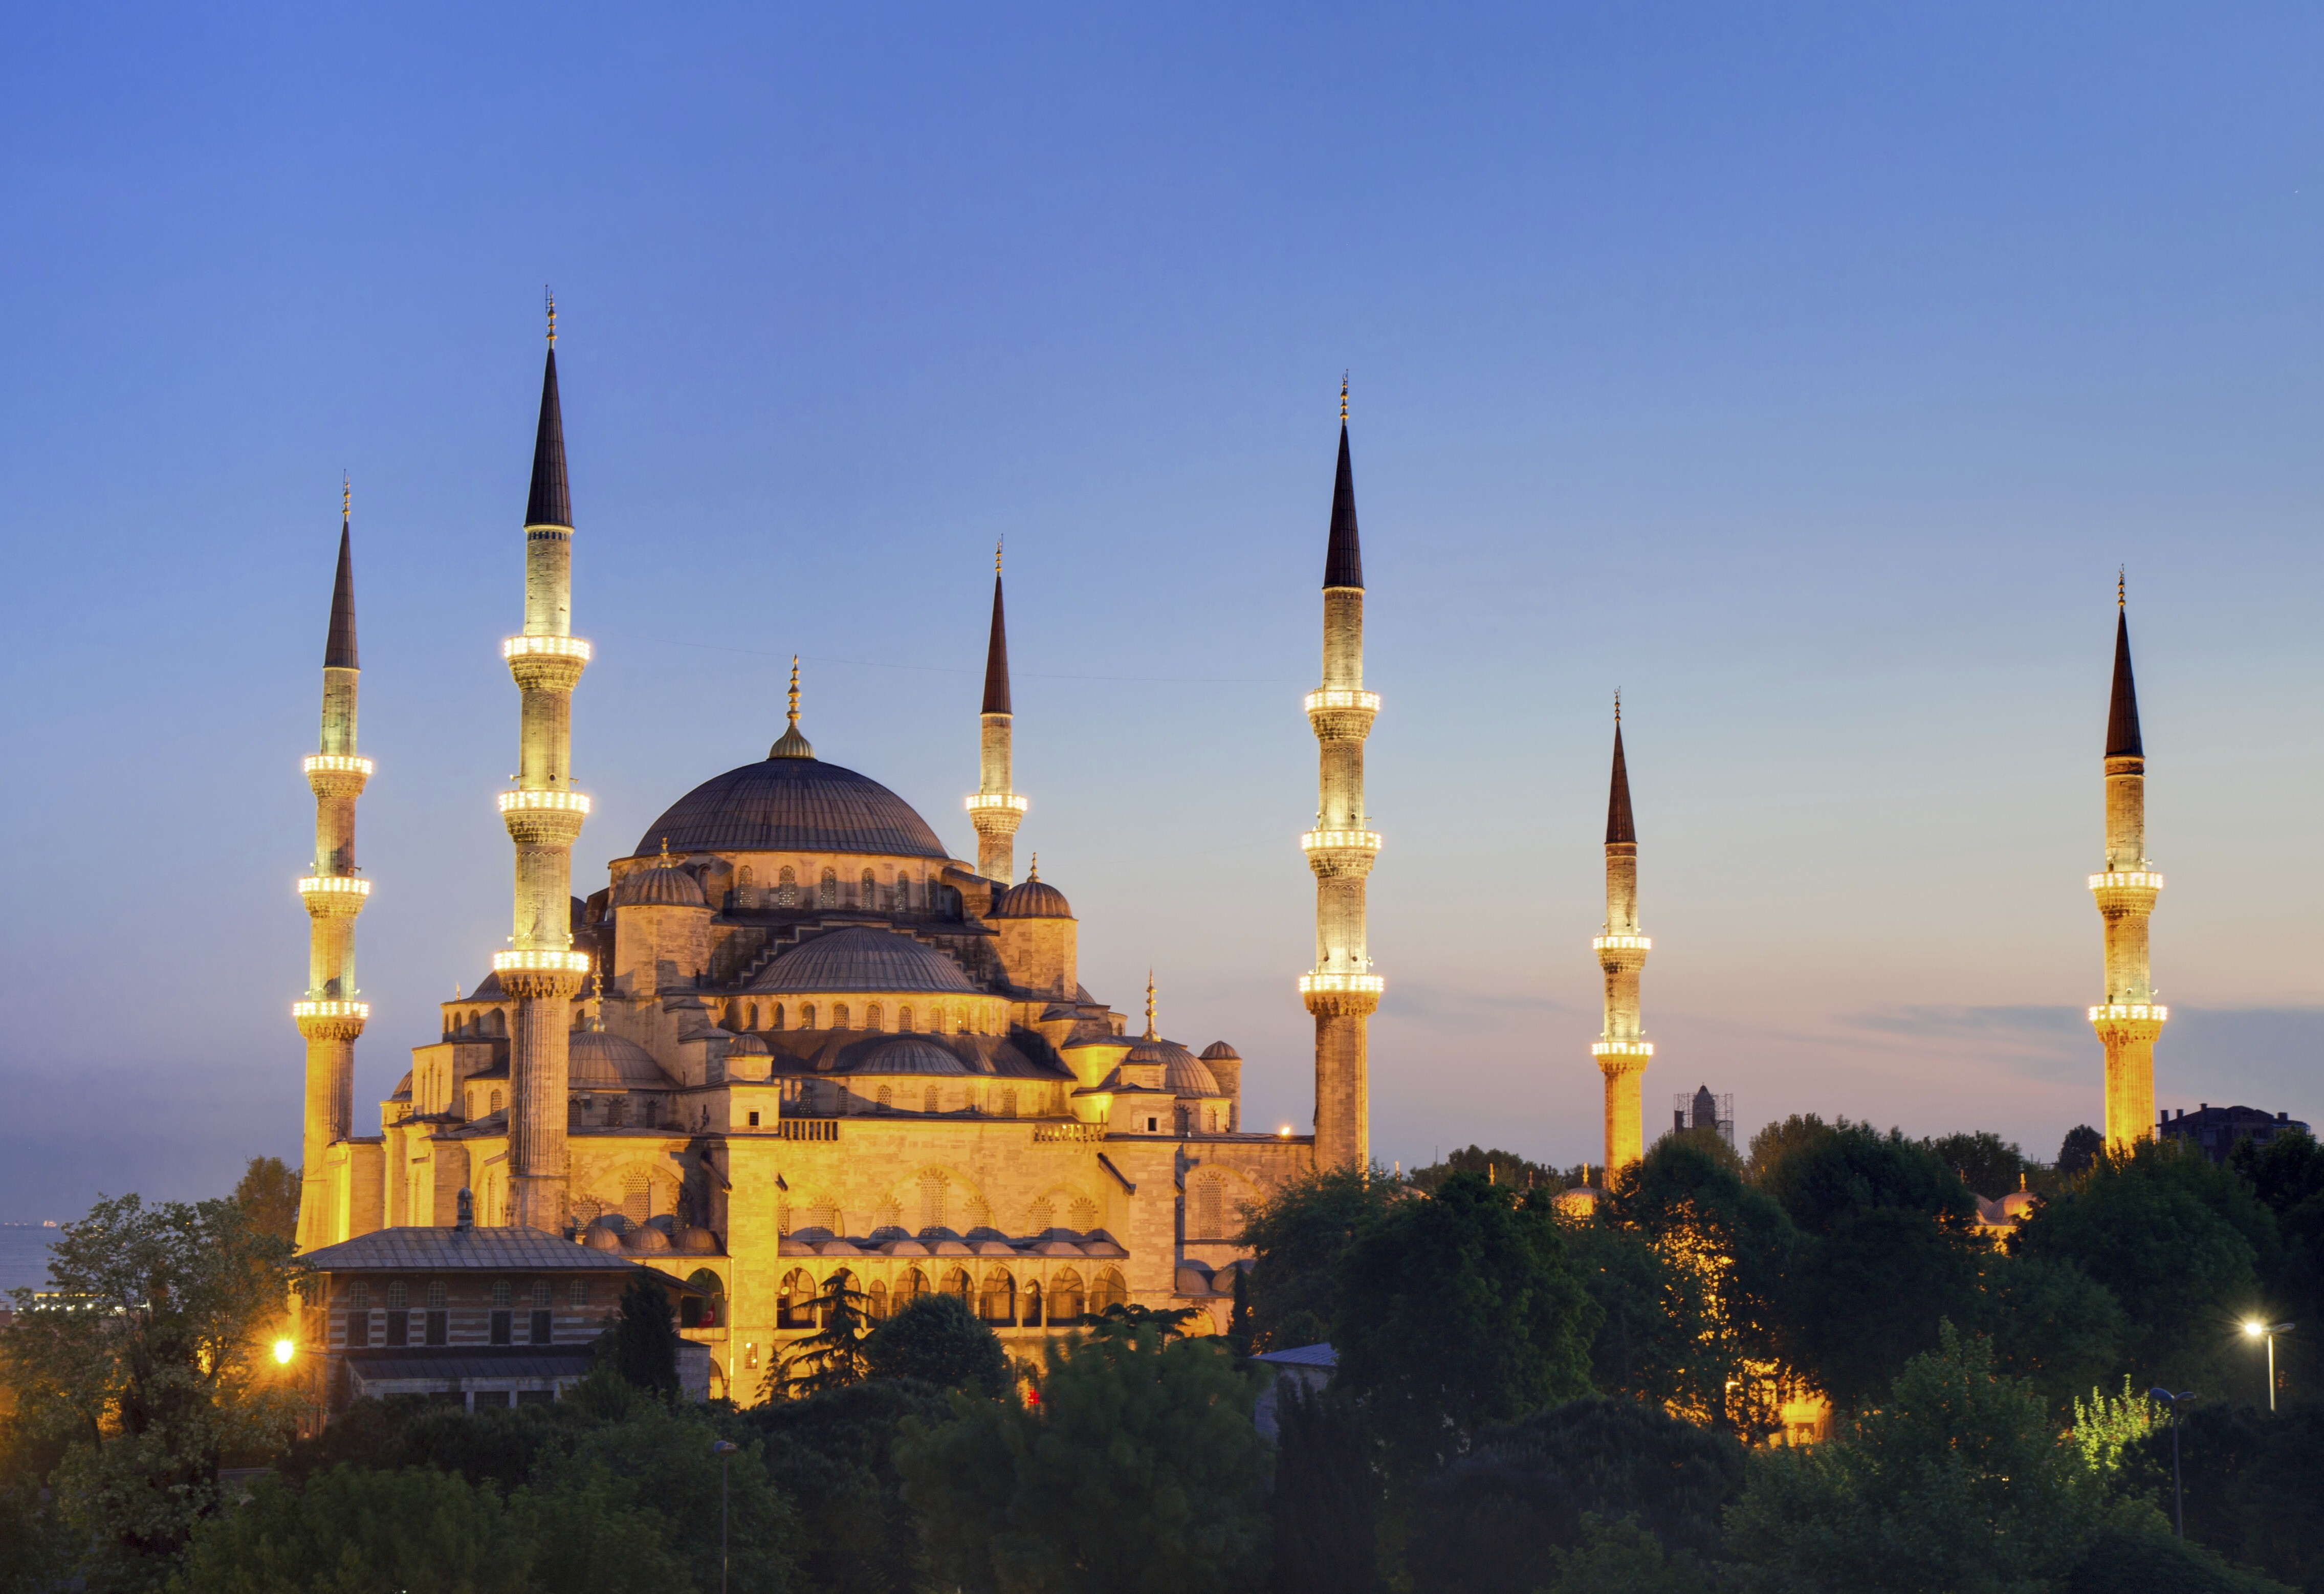 sultan ahmed mosque night view in turkey country images hd wallpapers